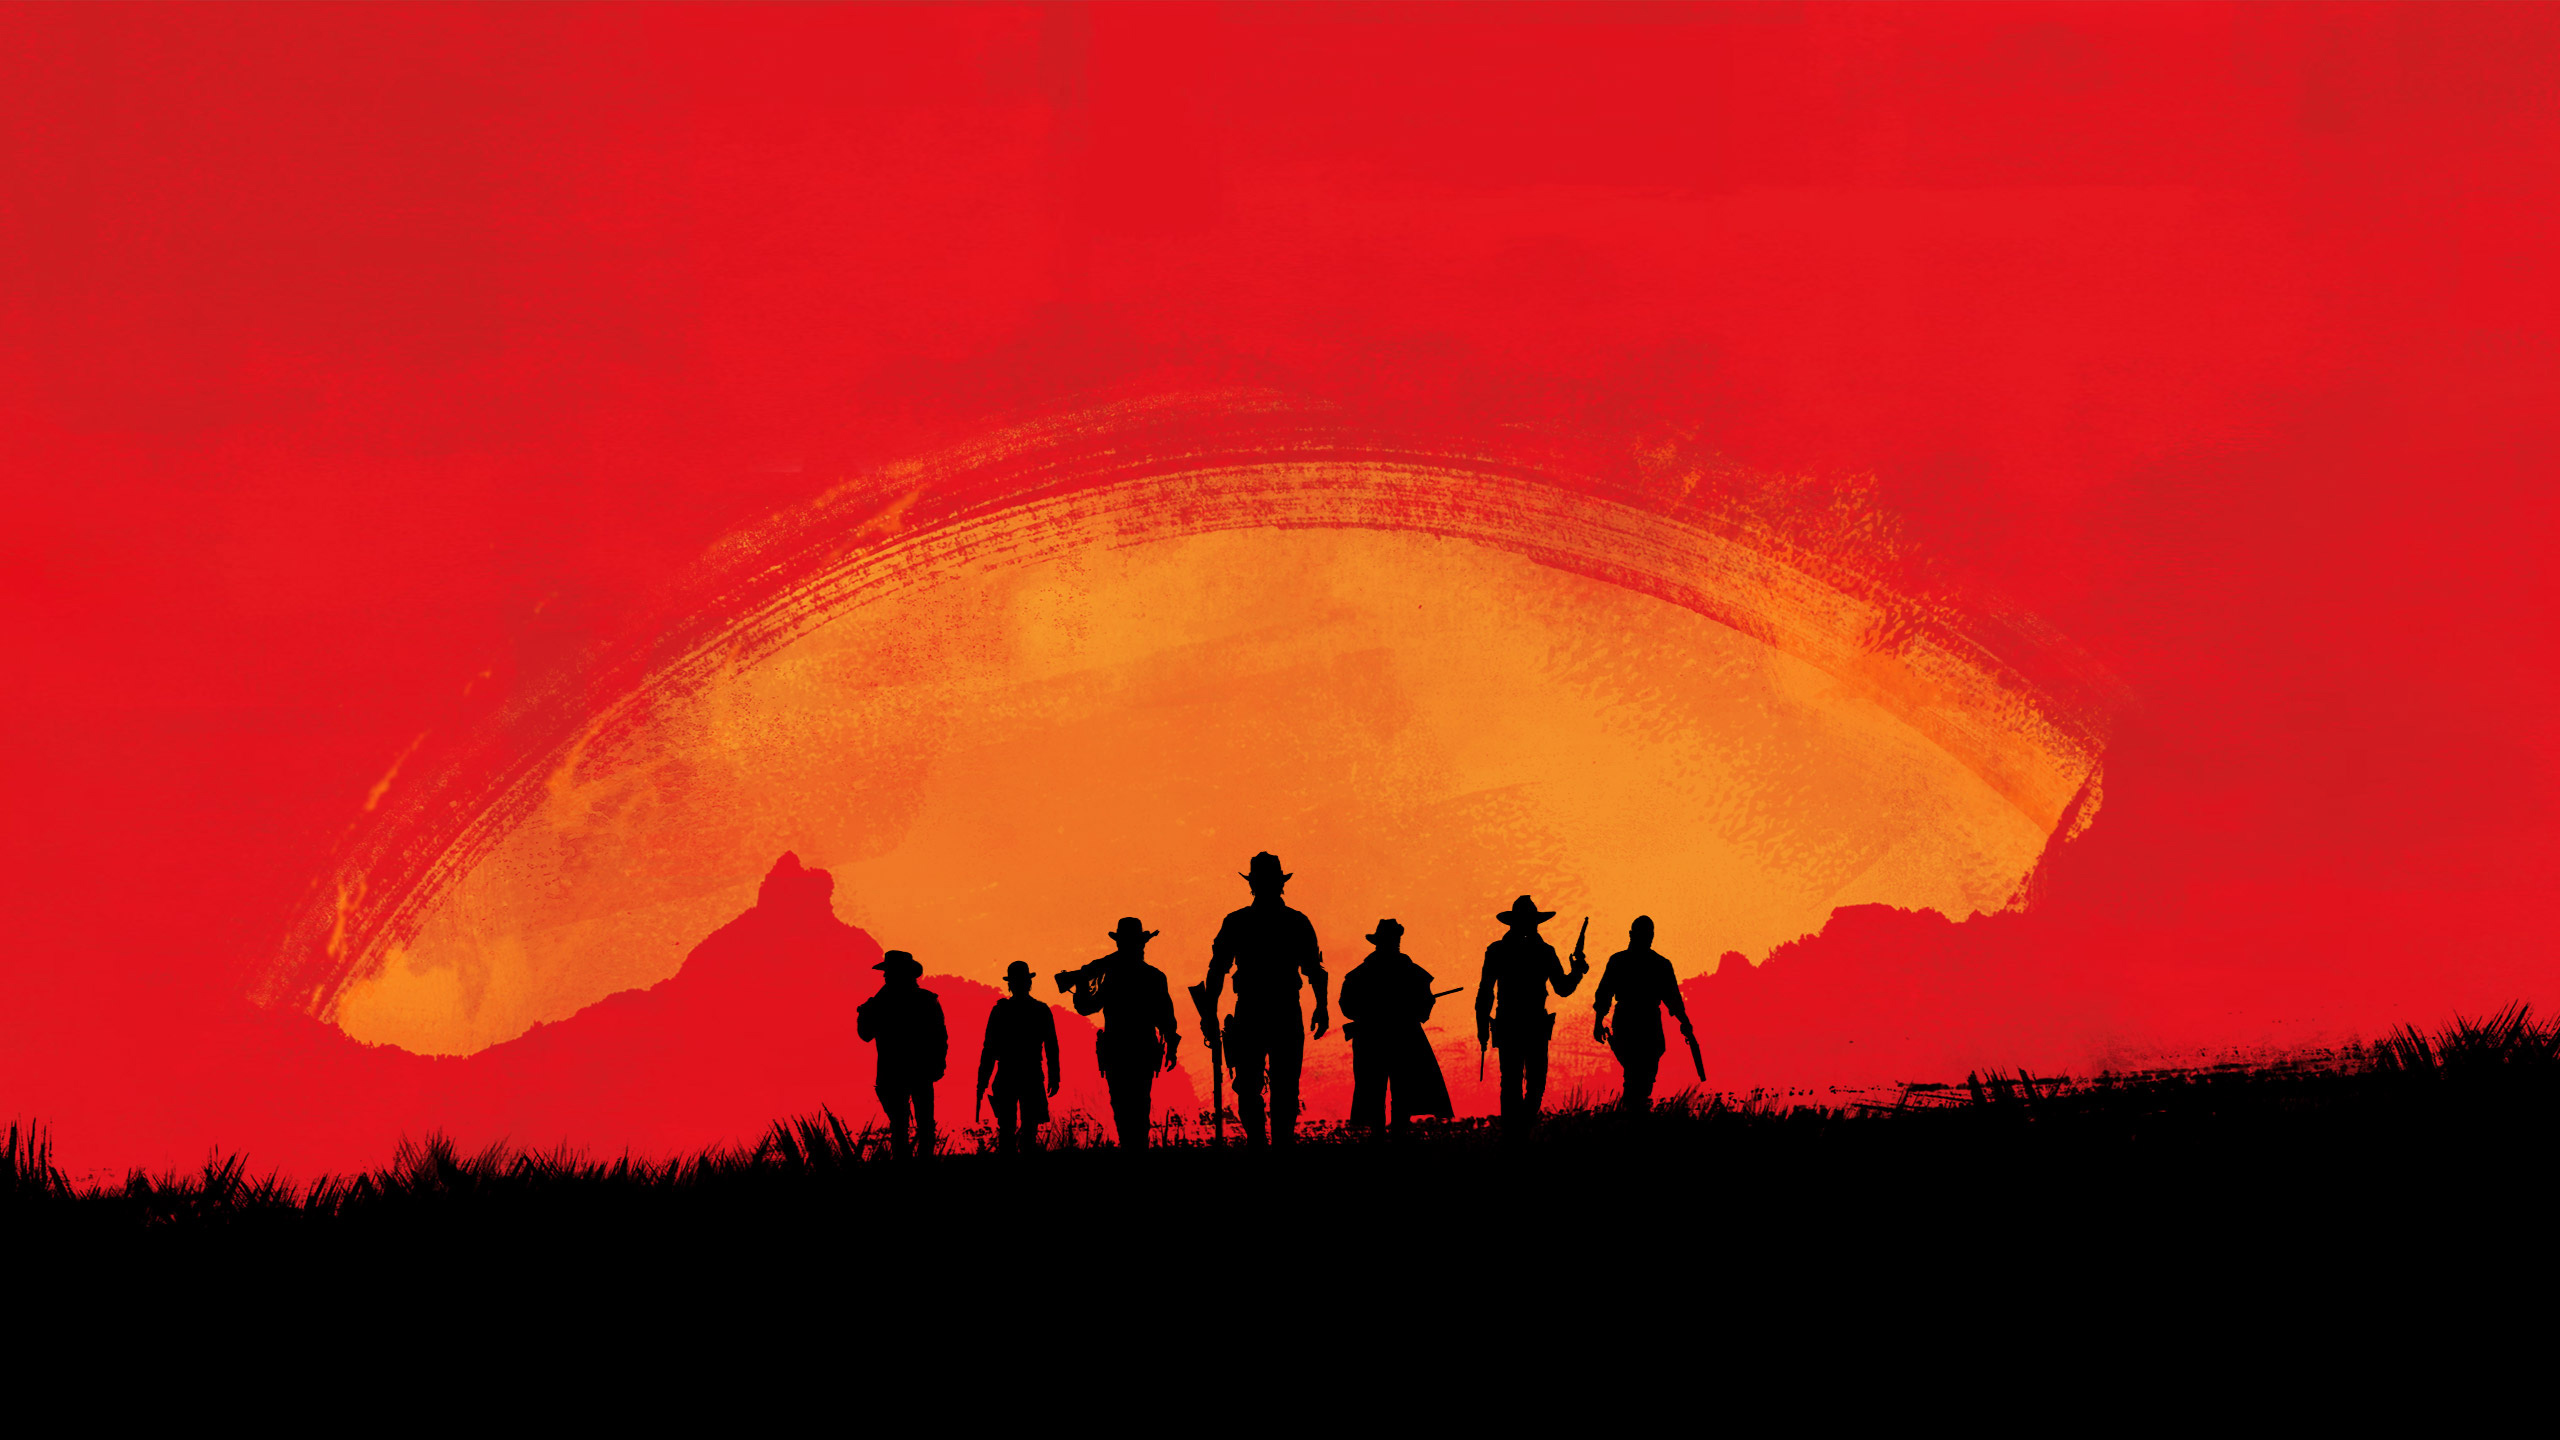 Red Dead Redemption 2 4k Wallpaper: 21 Red Dead Redemption 2 HD Wallpapers